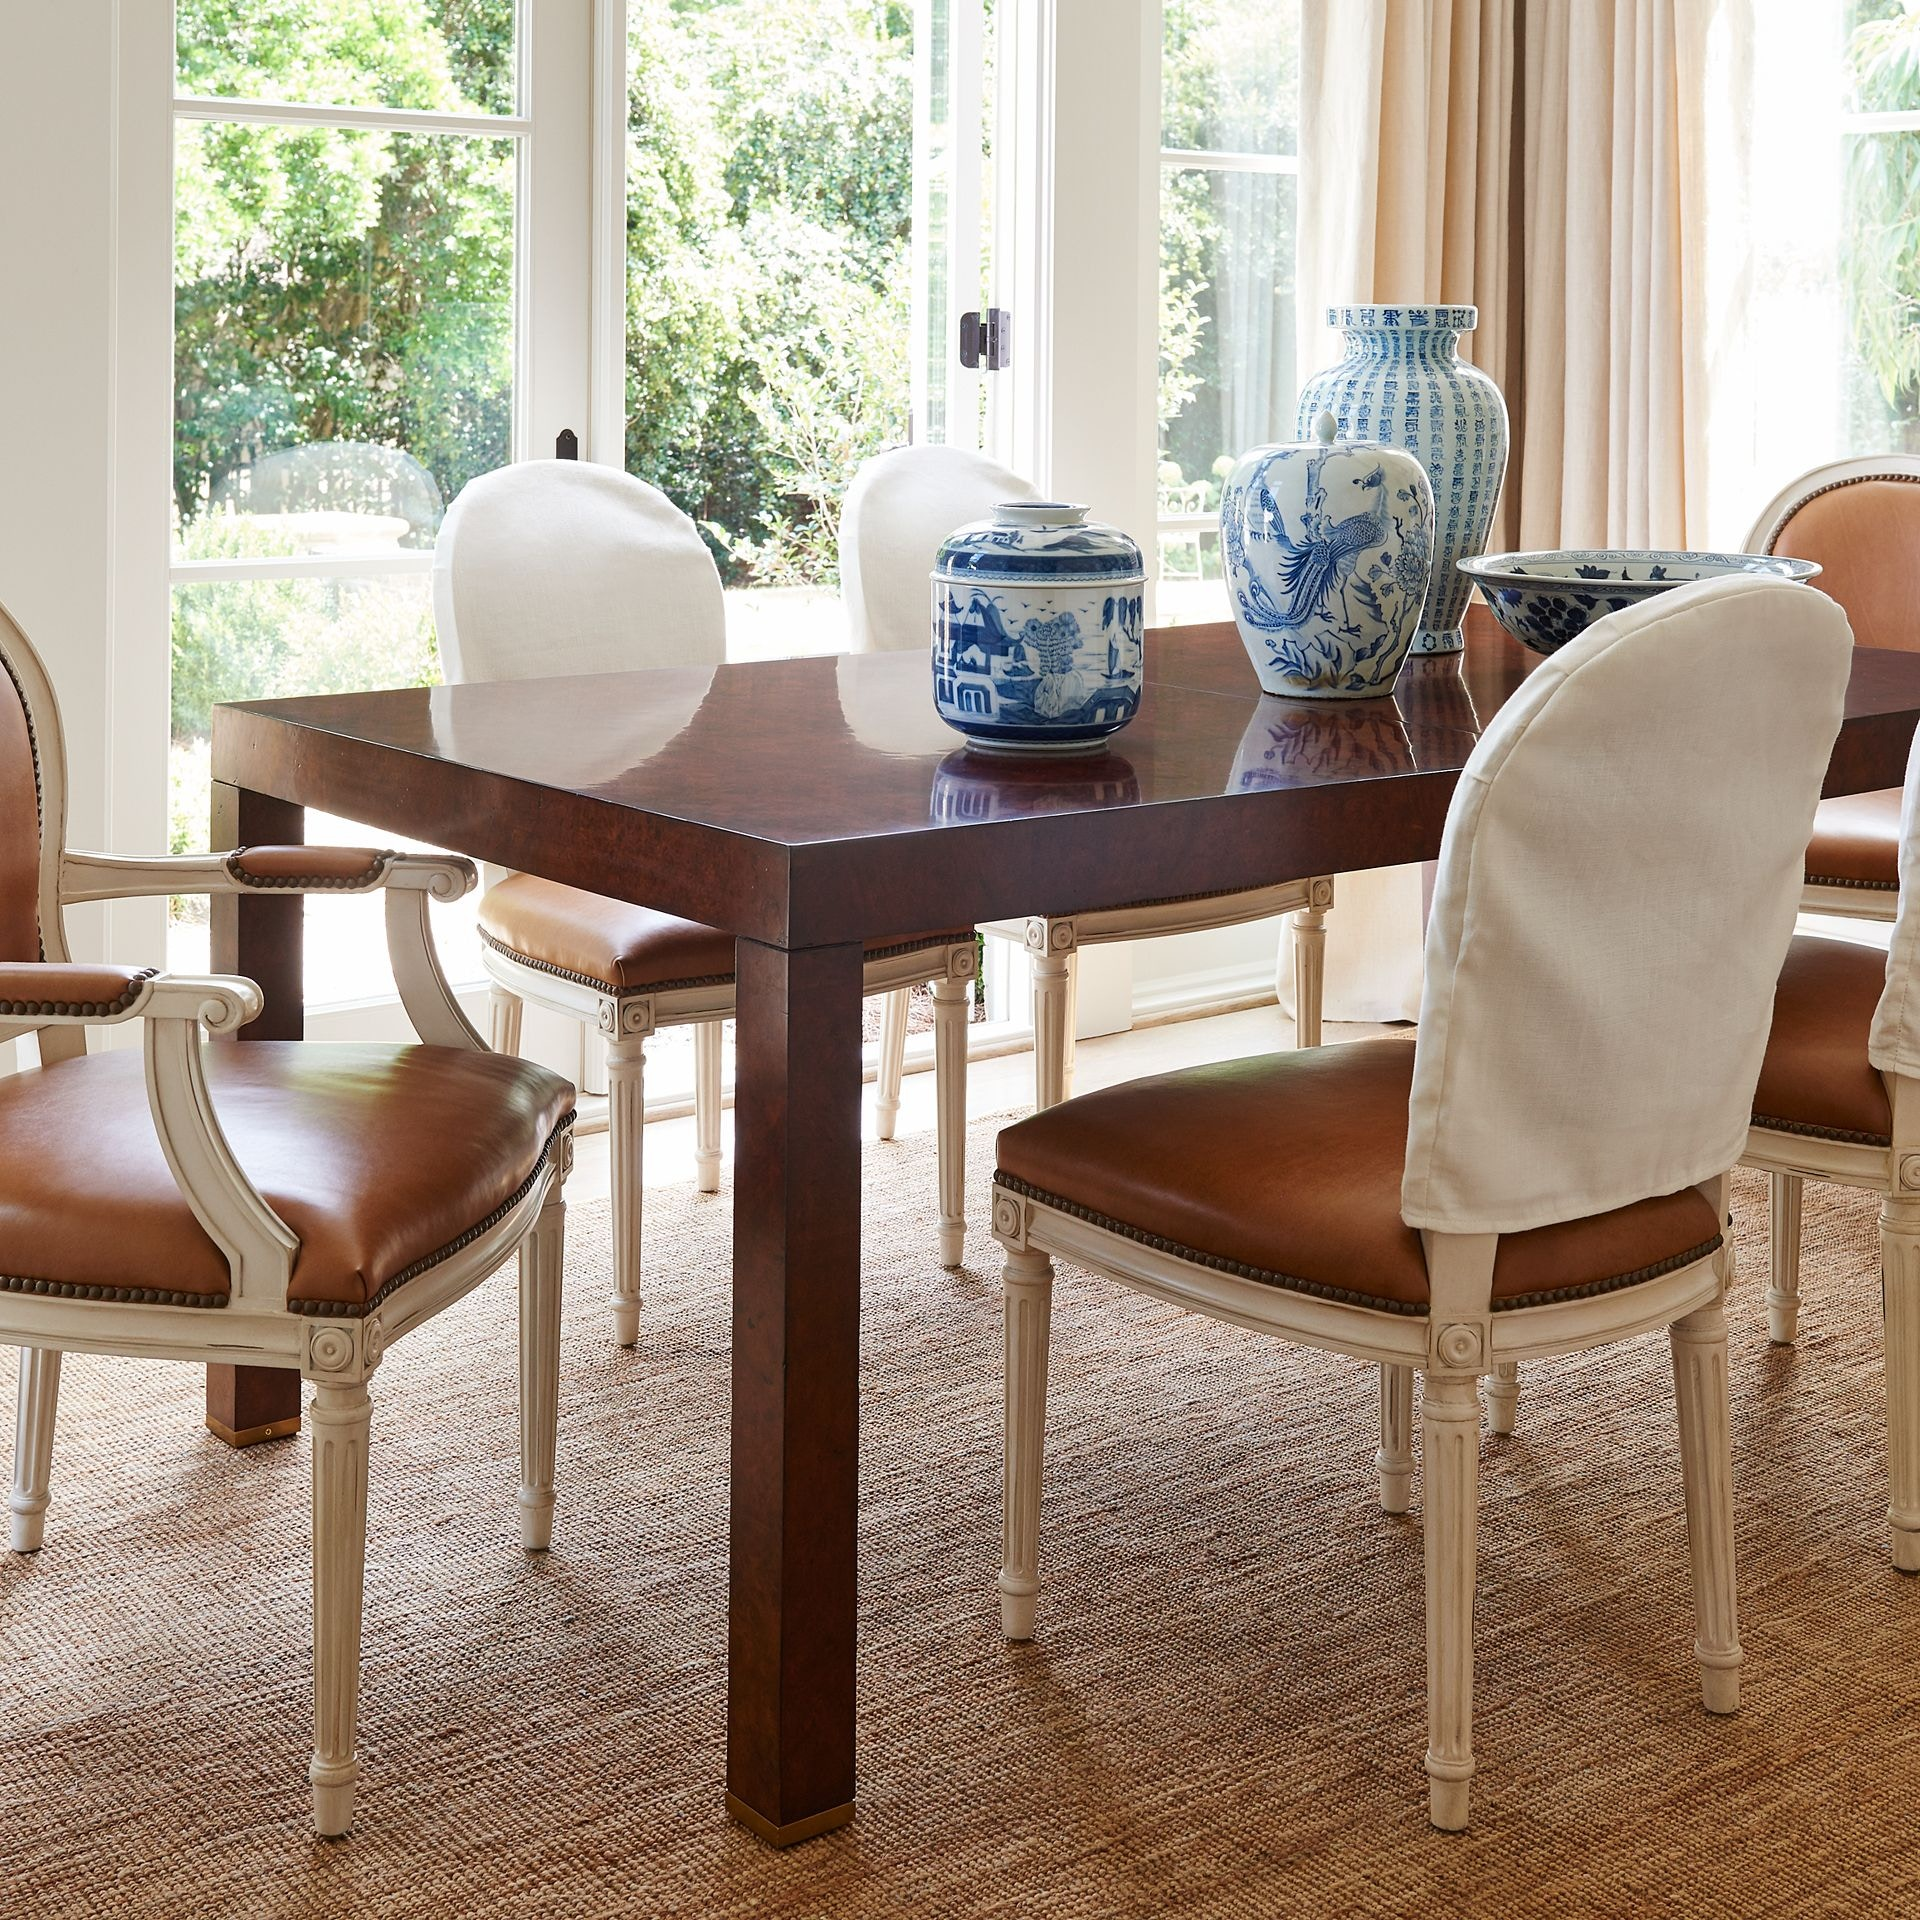 Henredon Furniture Mark D. Sikes Bel Air Parsons Dining Table 2401 20 806